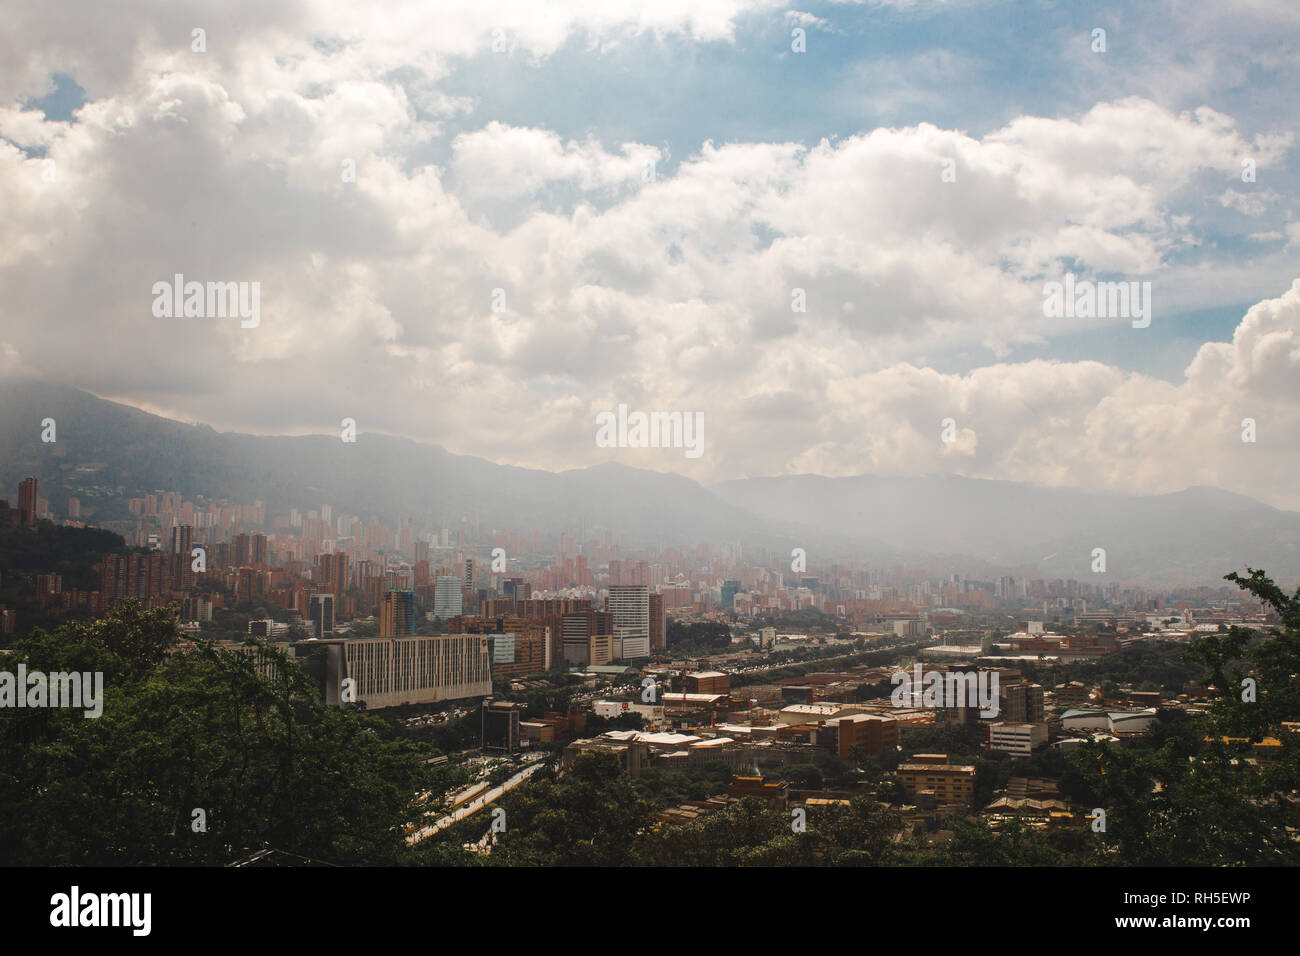 Views over the sprawling valley city of Medellín, Colombia - Stock Image